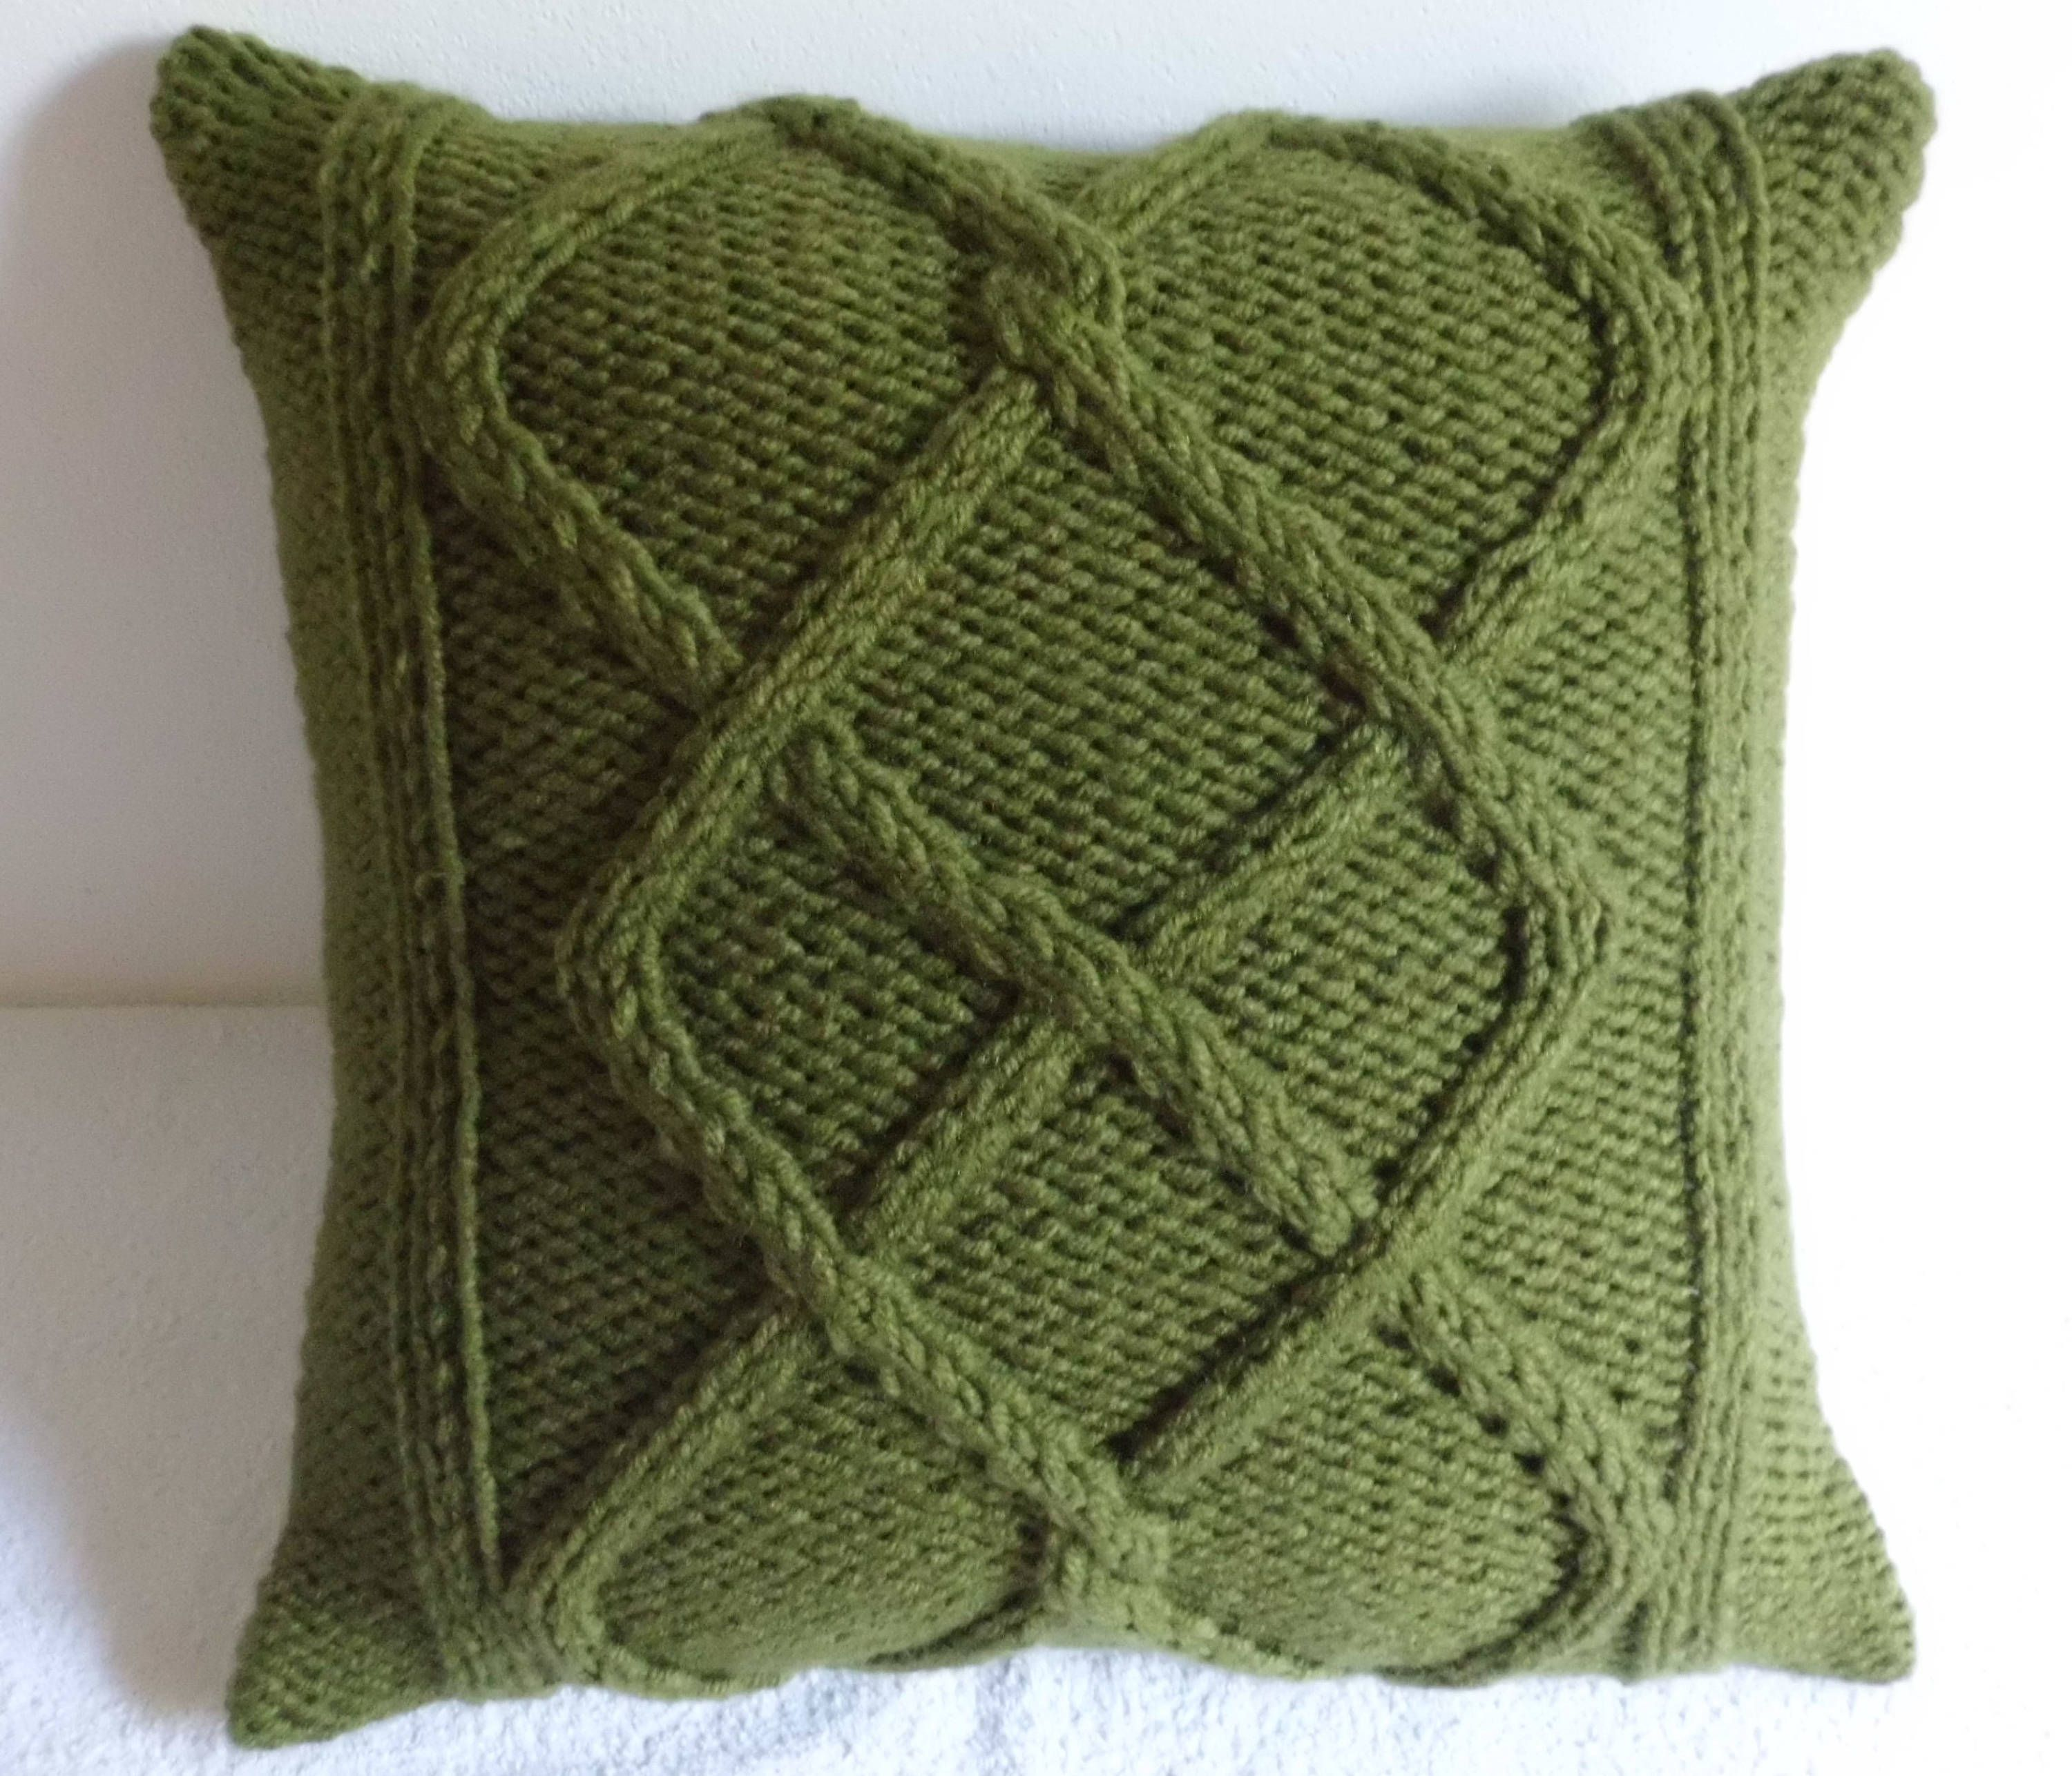 Olive Green Chunky Cable Knit Pillow Cover, Throw Pillow, Chartreuse ...